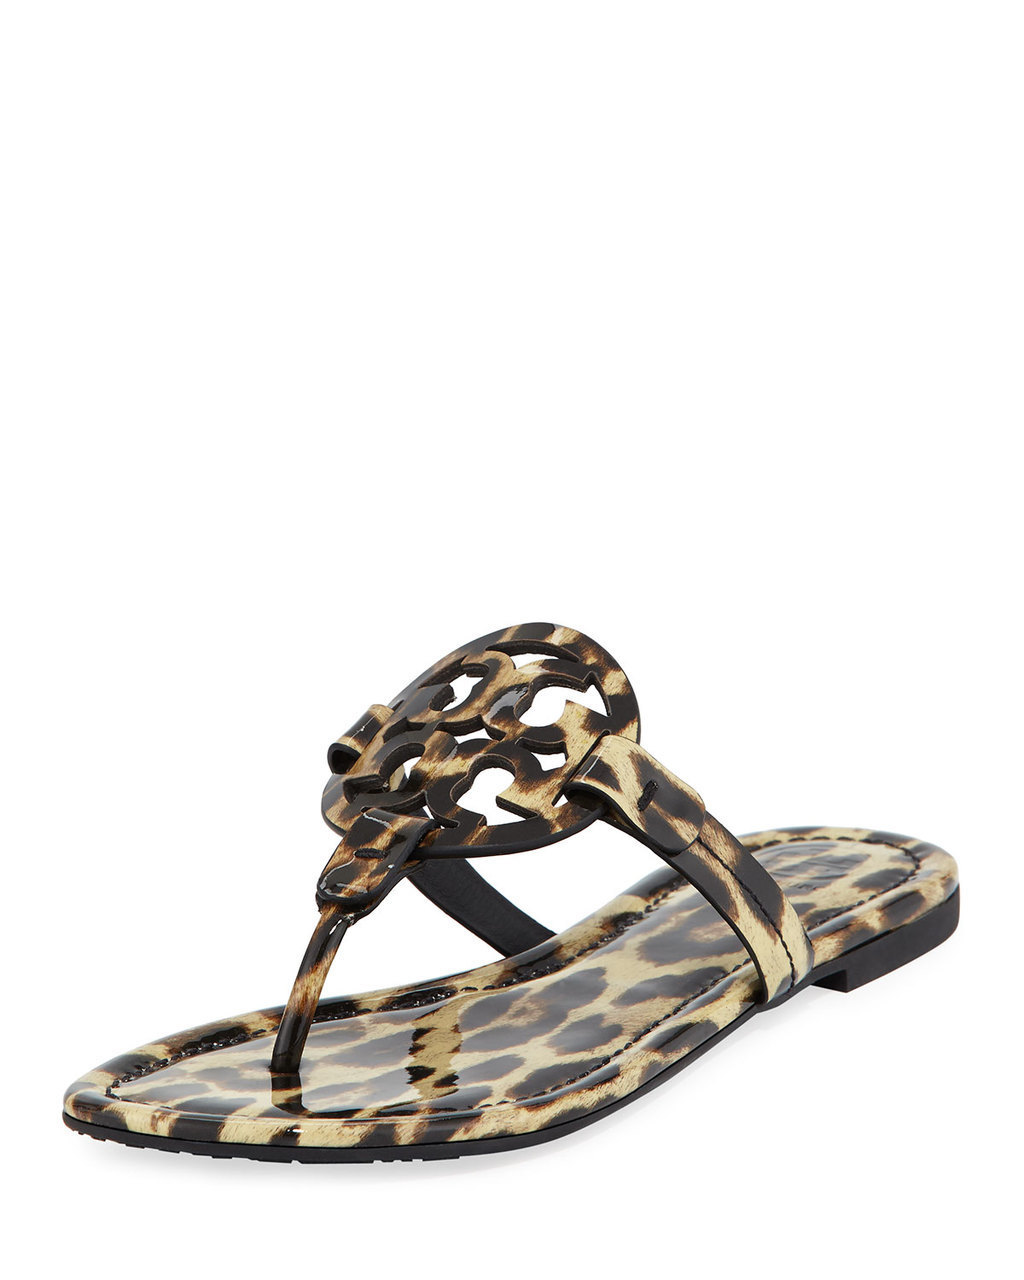 TORY BURCH MILLER PRINTED FLAT THONG SANDALS LEOPARD $175 FREE S&H - $175.00